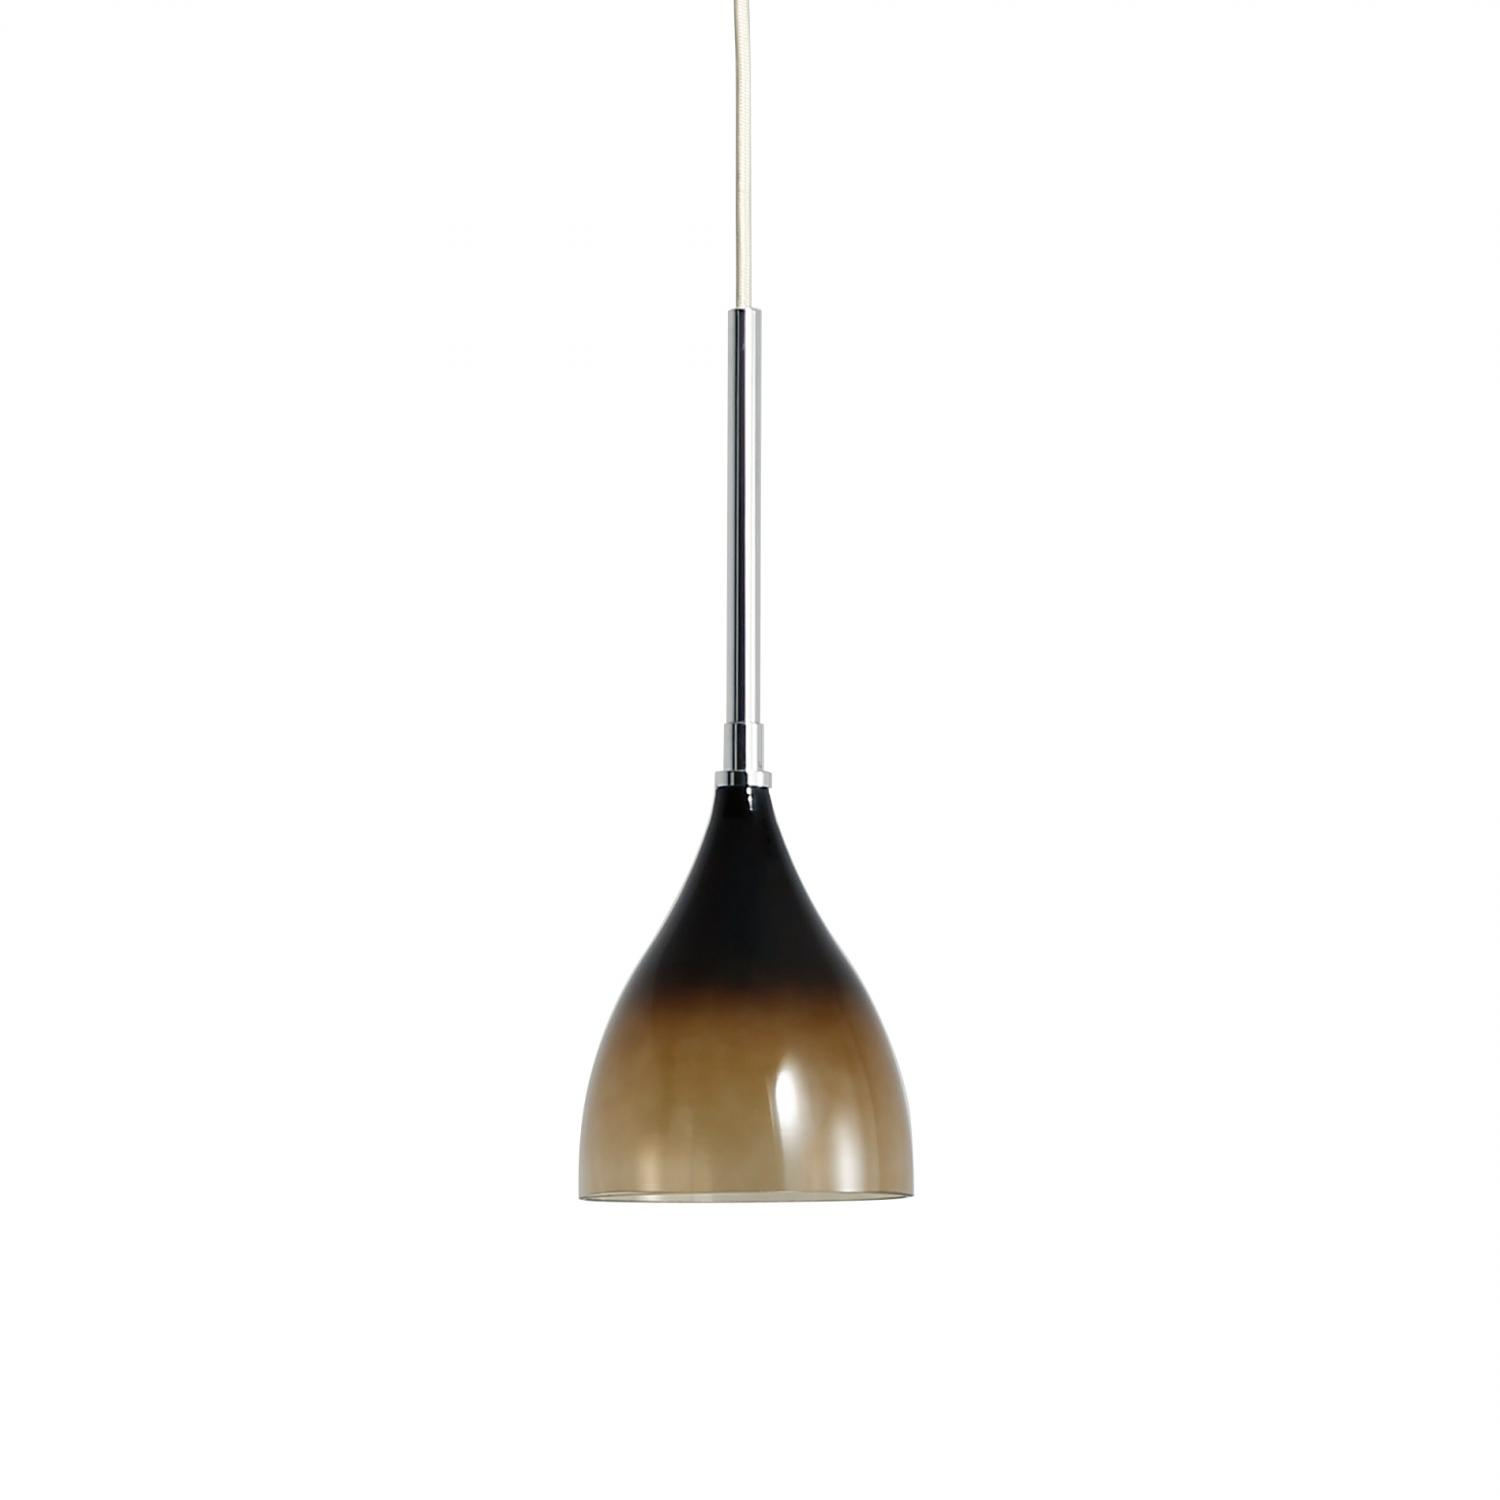 BVH Original design Hold Pendant Lamp